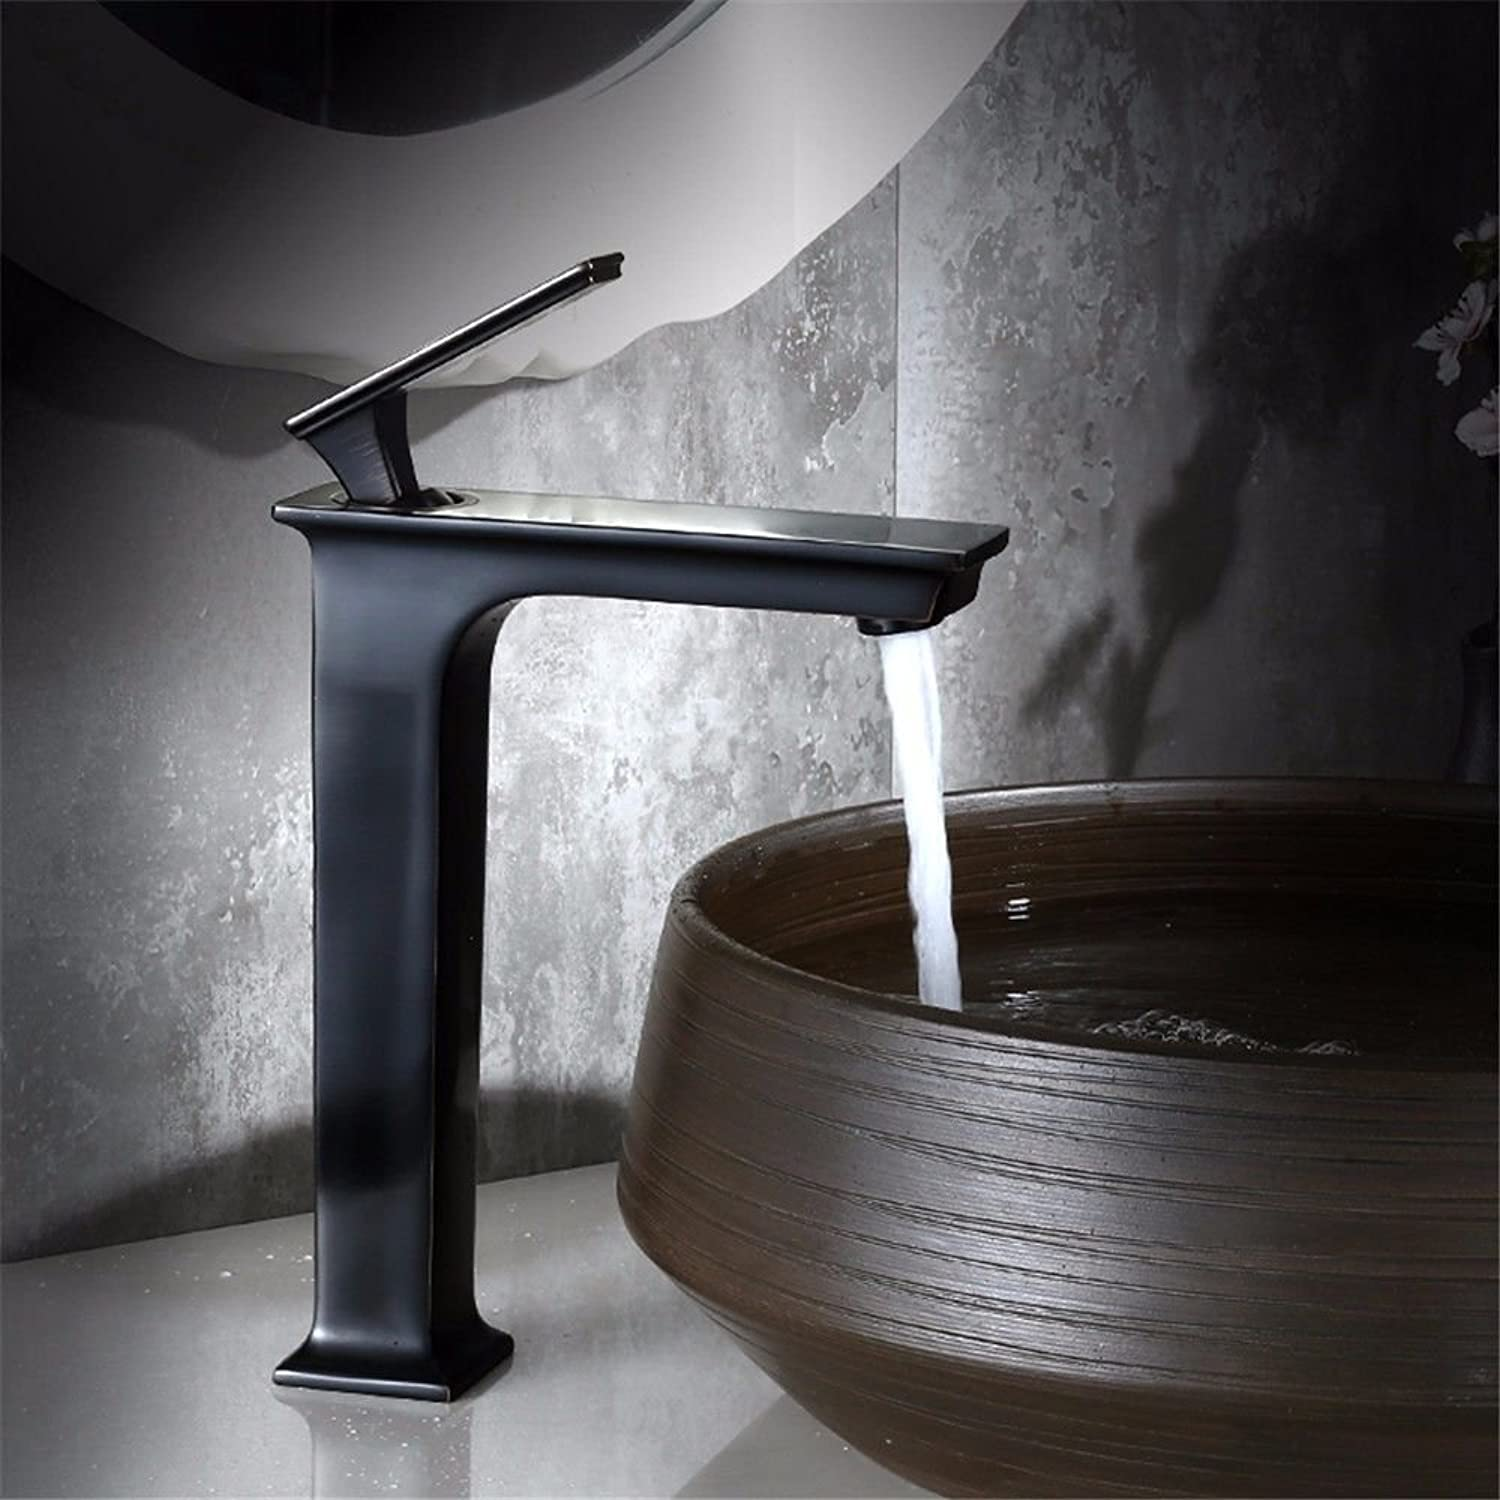 Lpophy Bathroom Sink Mixer Taps Faucet Bath Waterfall Cold and Hot Water Tap for Washroom Bathroom and Kitchen Black Hot and Cold Copper